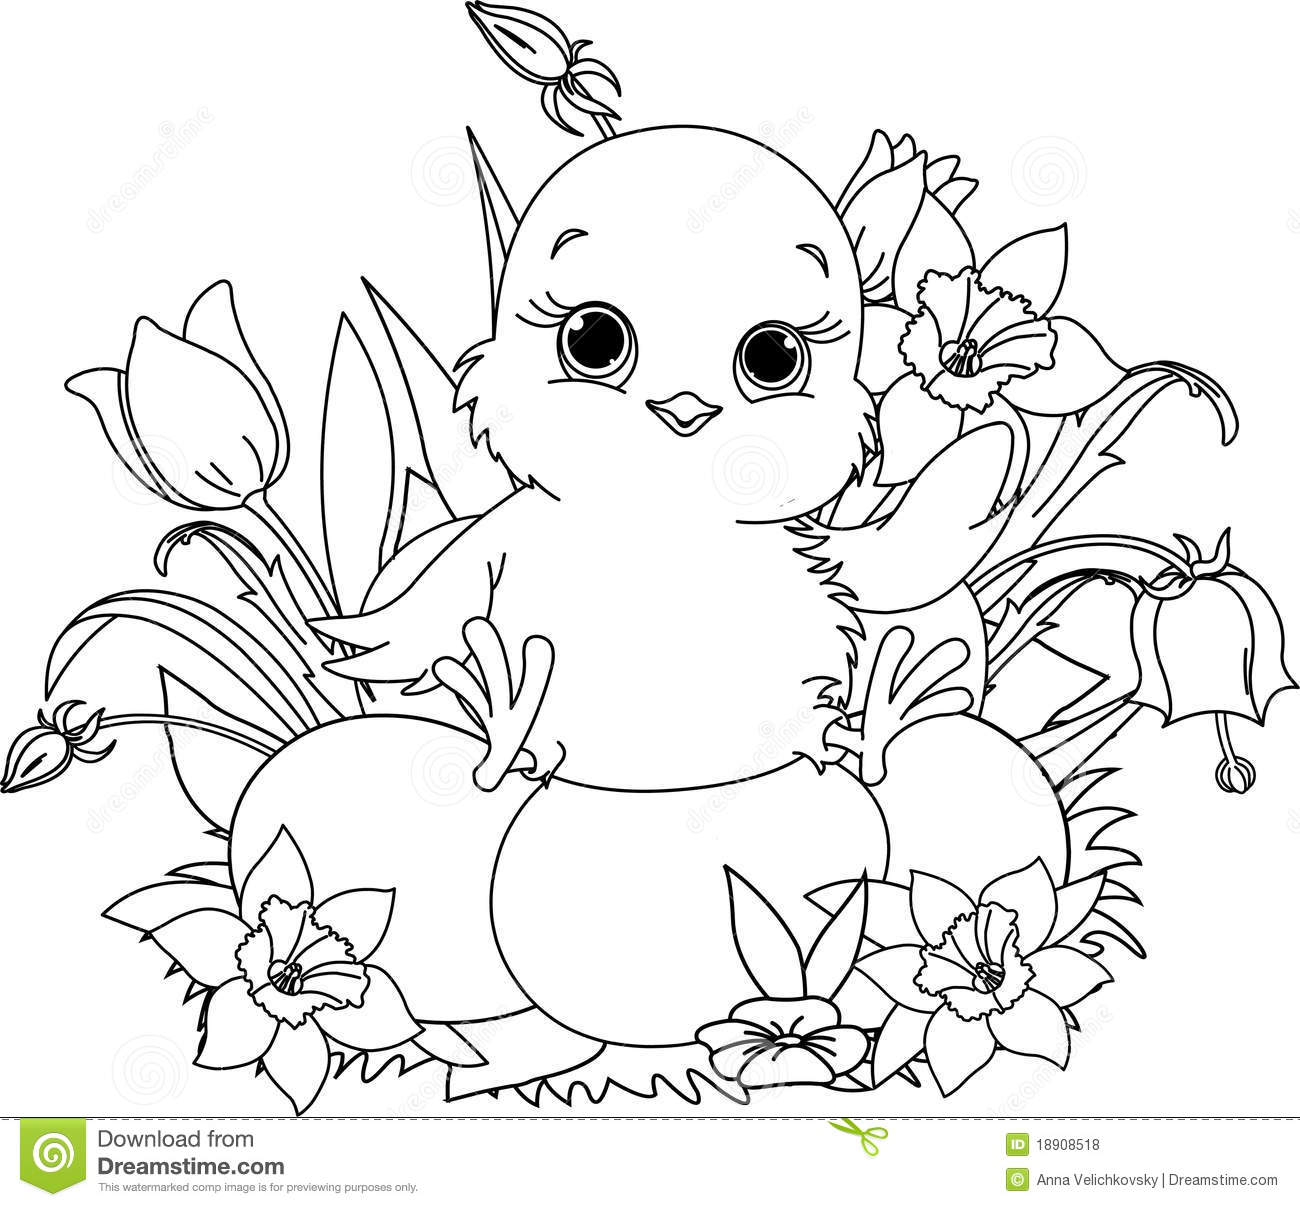 coloring page - Free Download Coloring Pages